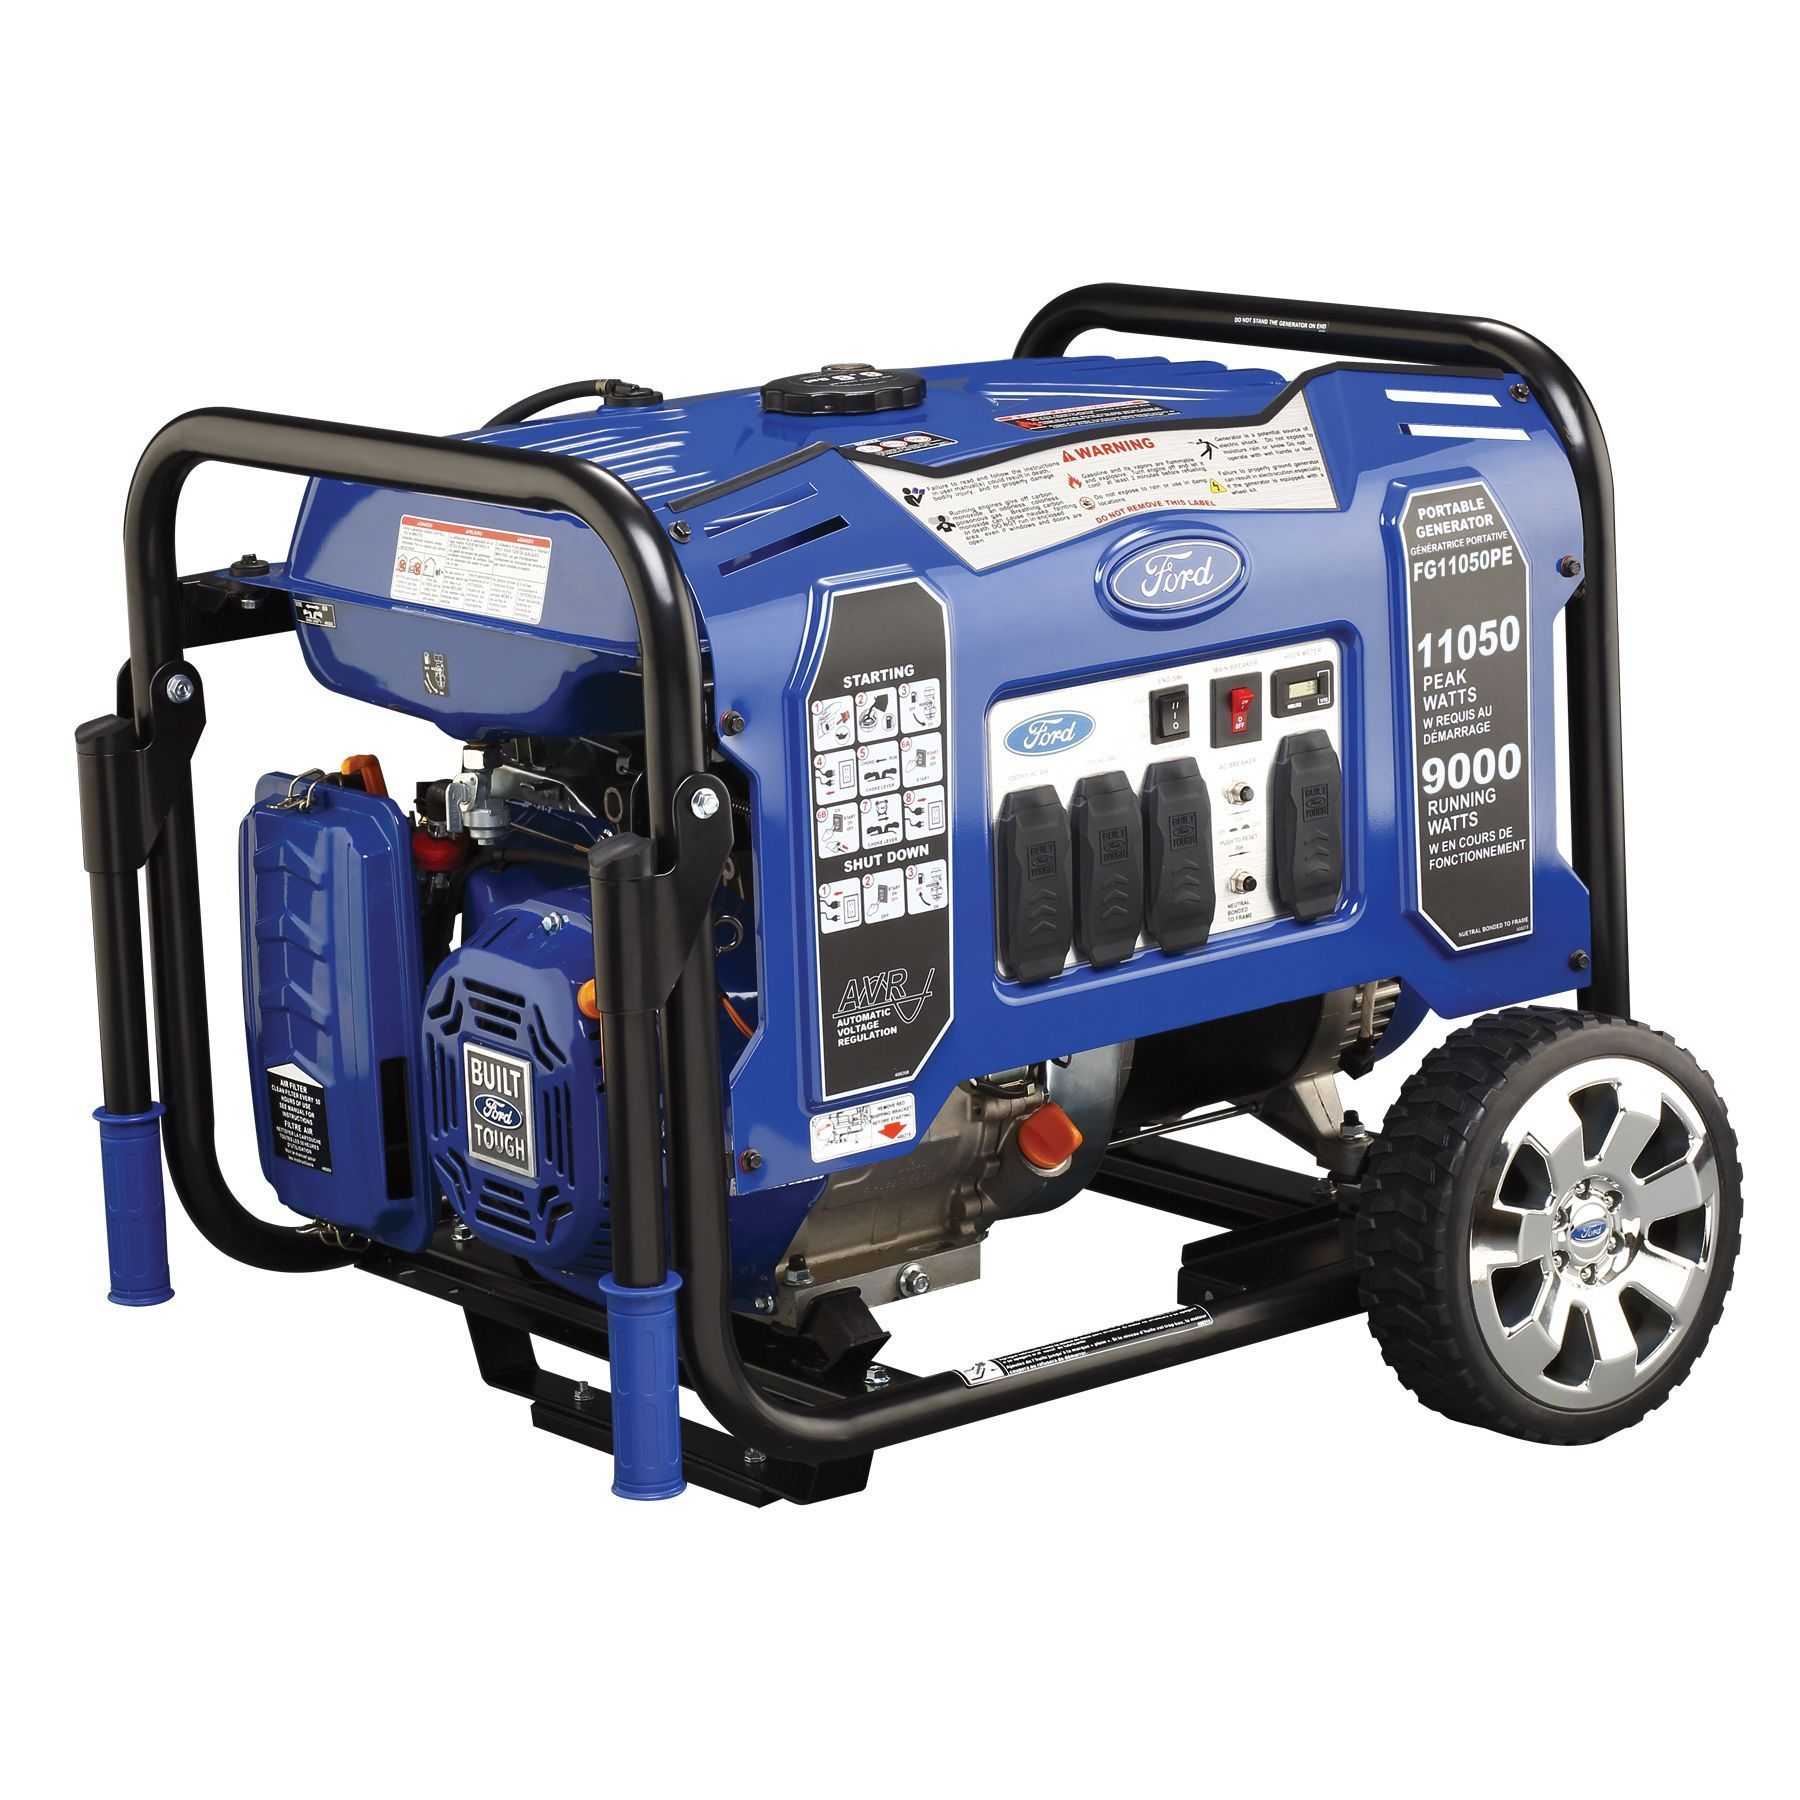 Ford watt Portable Generator